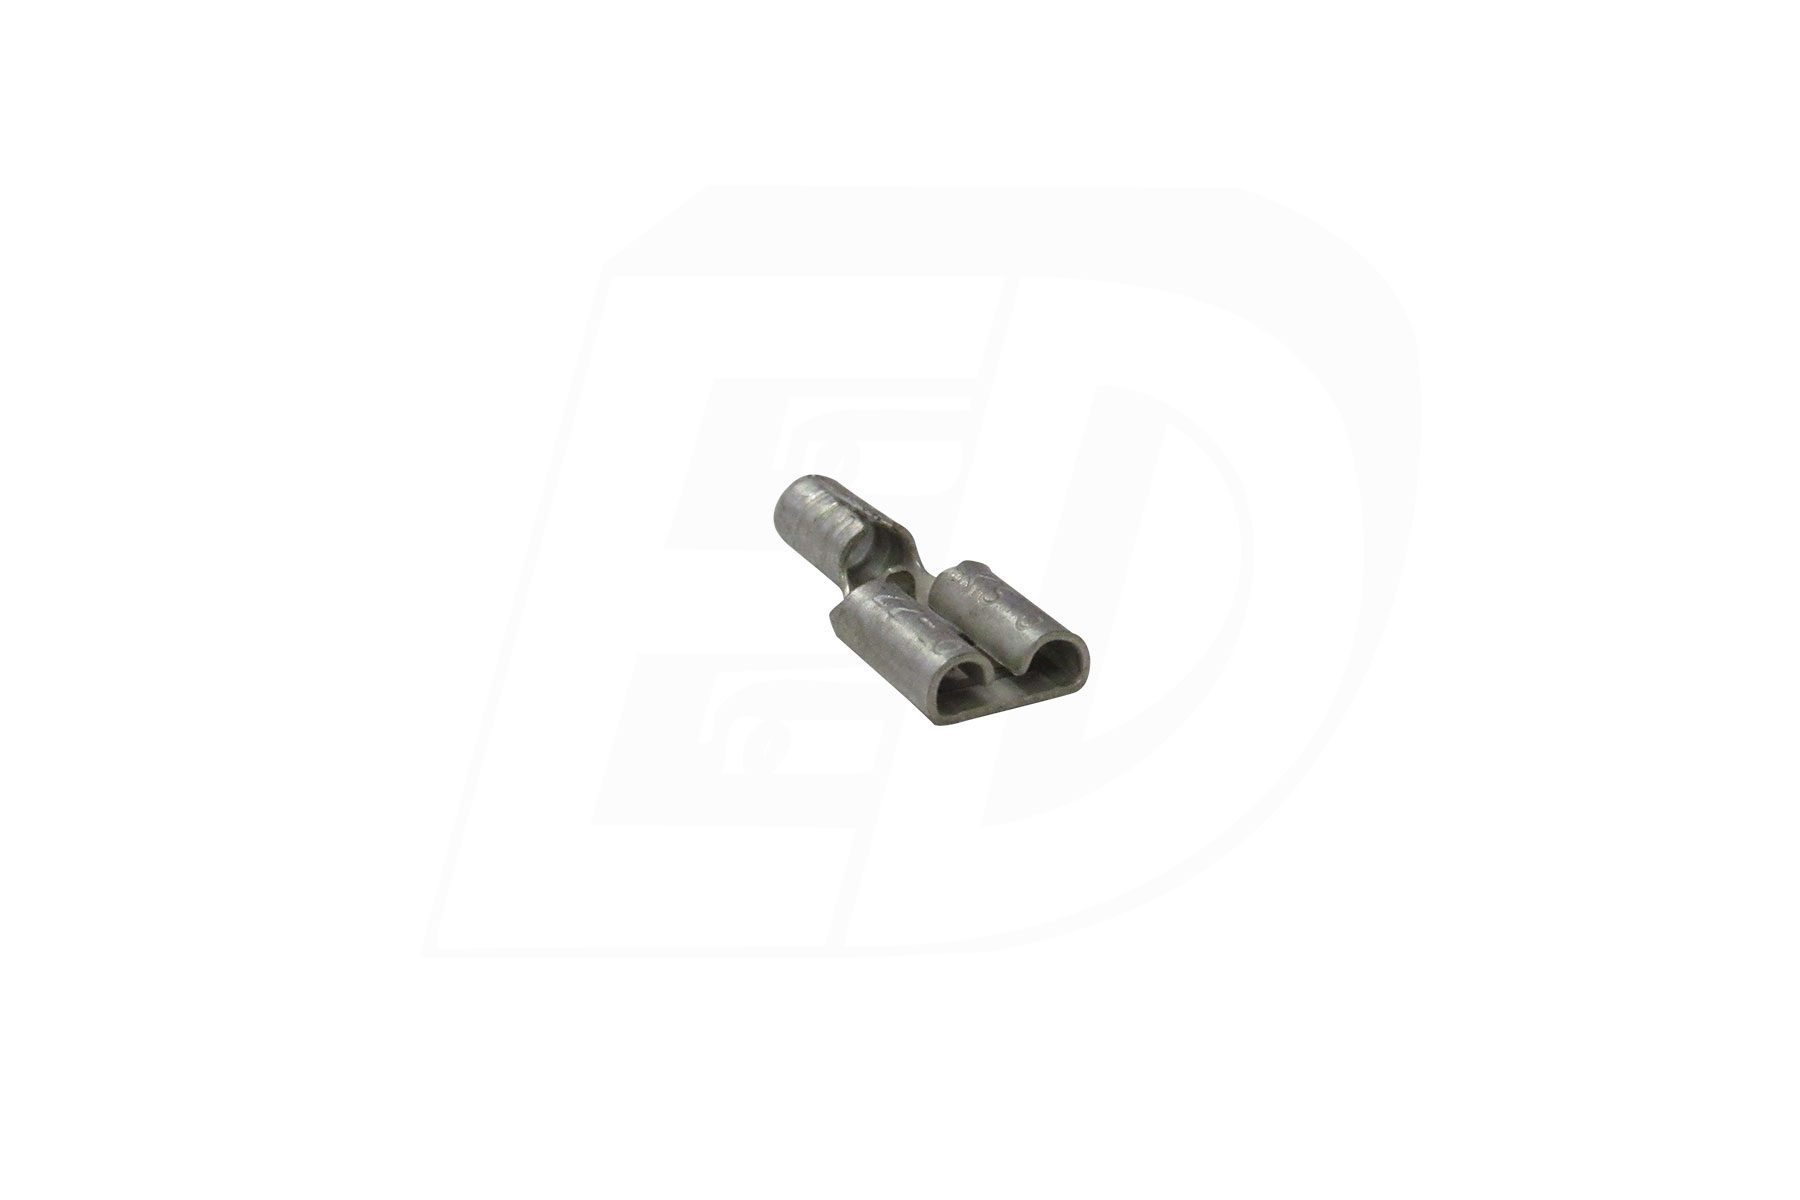 Butted Seam Female Disconnect Terminals 22 - 16 AWG